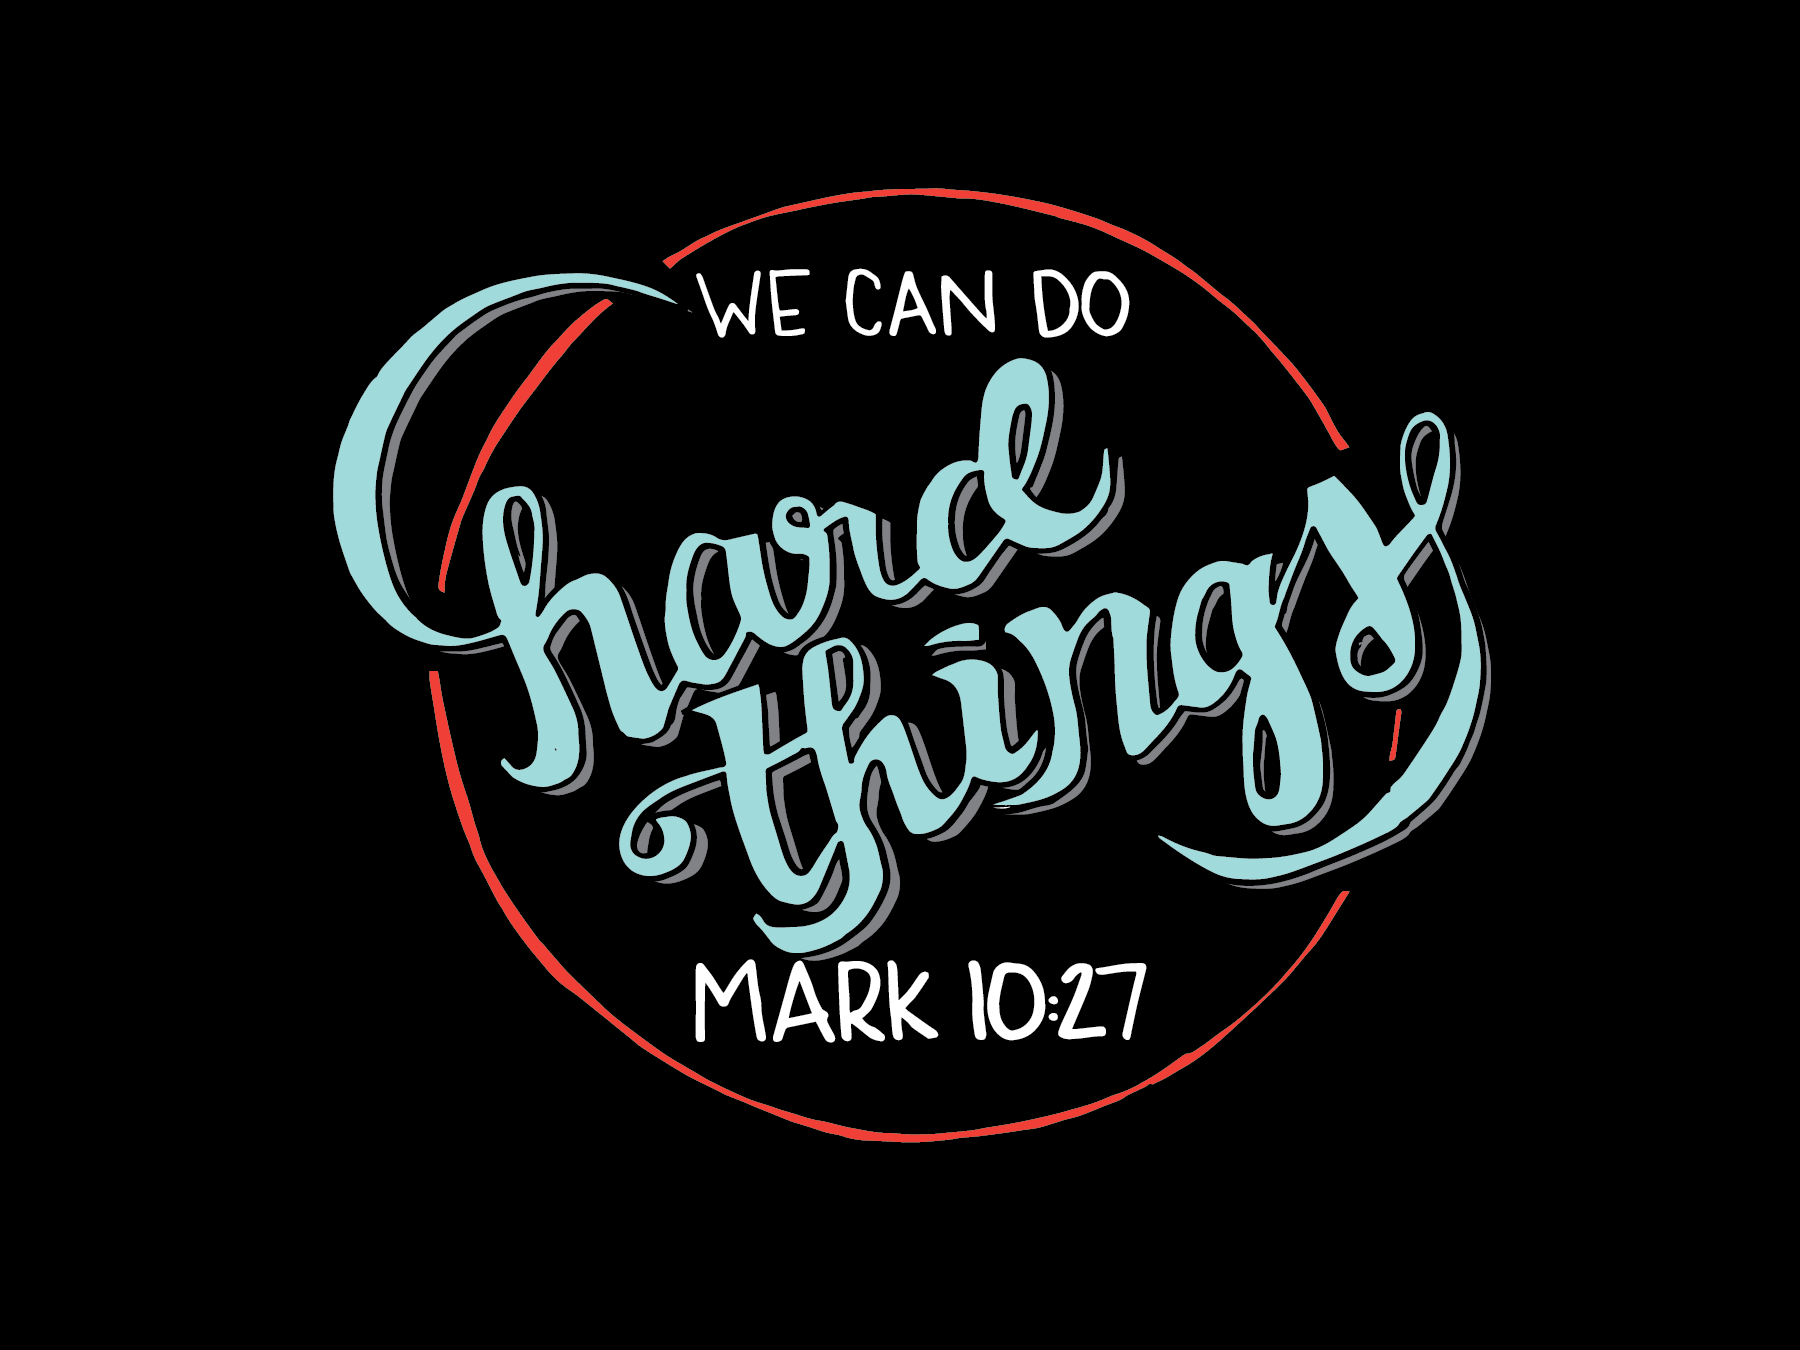 we can do had things